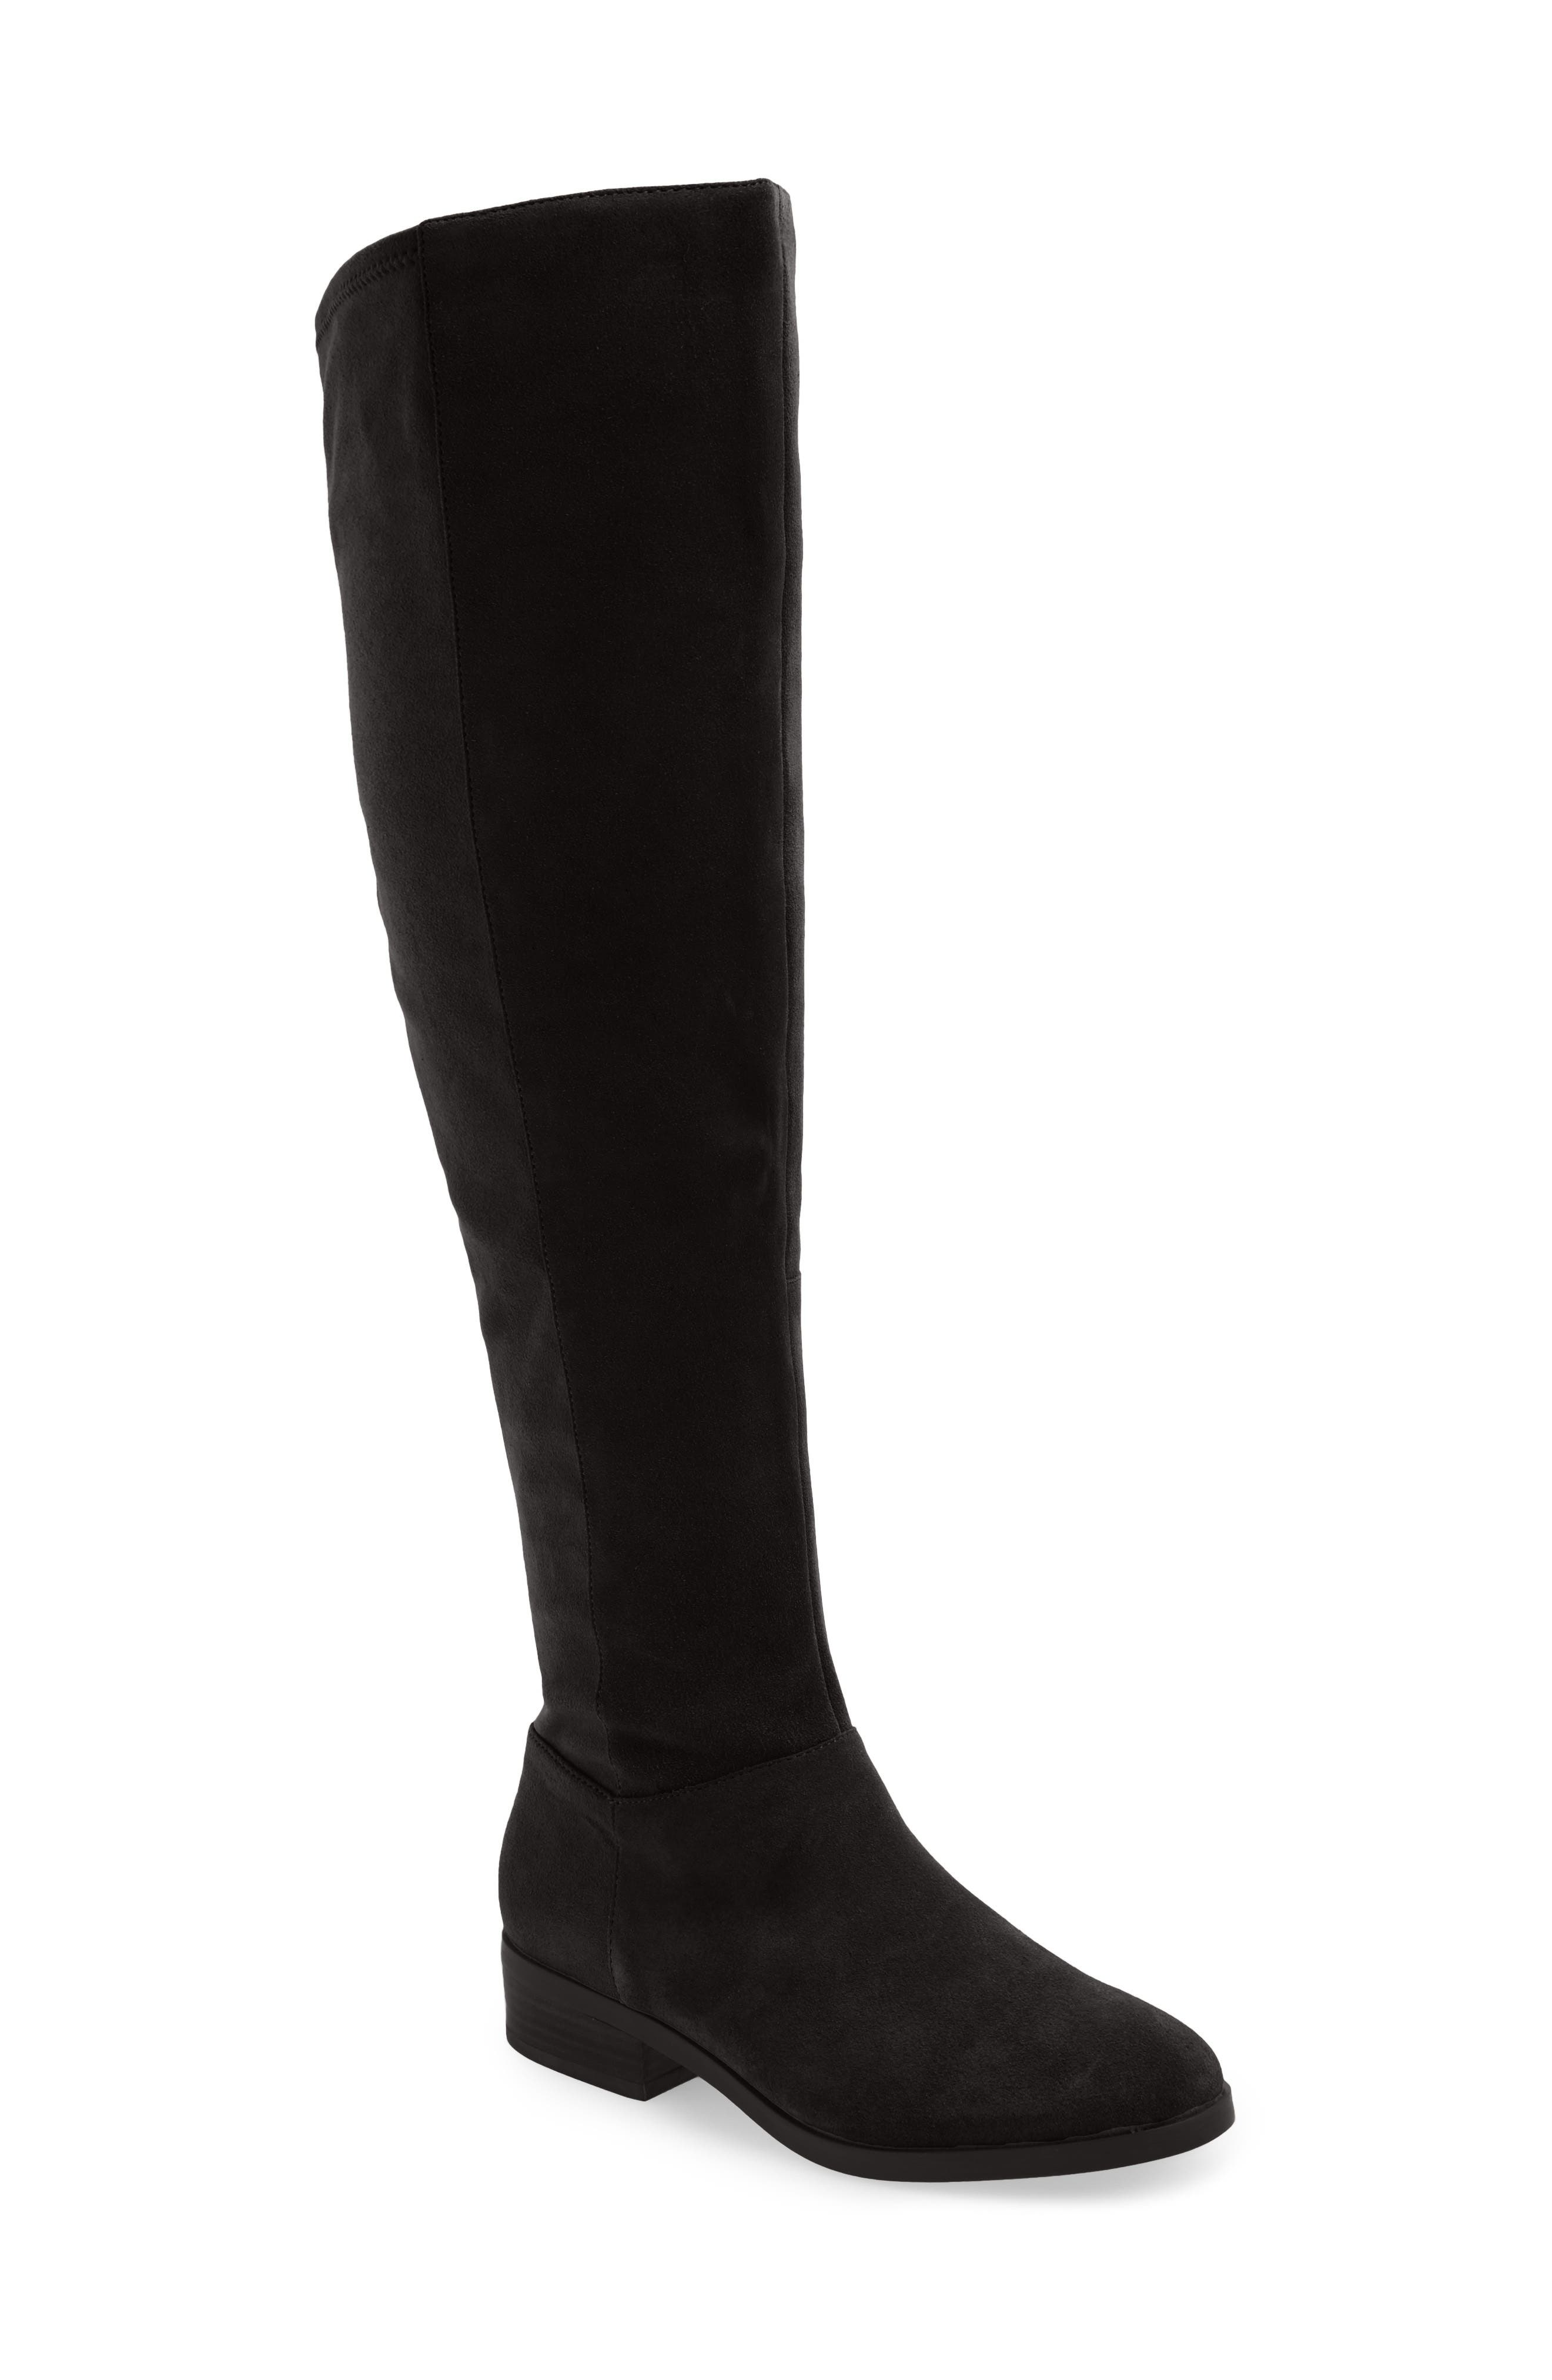 Main Image - Sole Society Kinney Over the Knee Boot (Women)